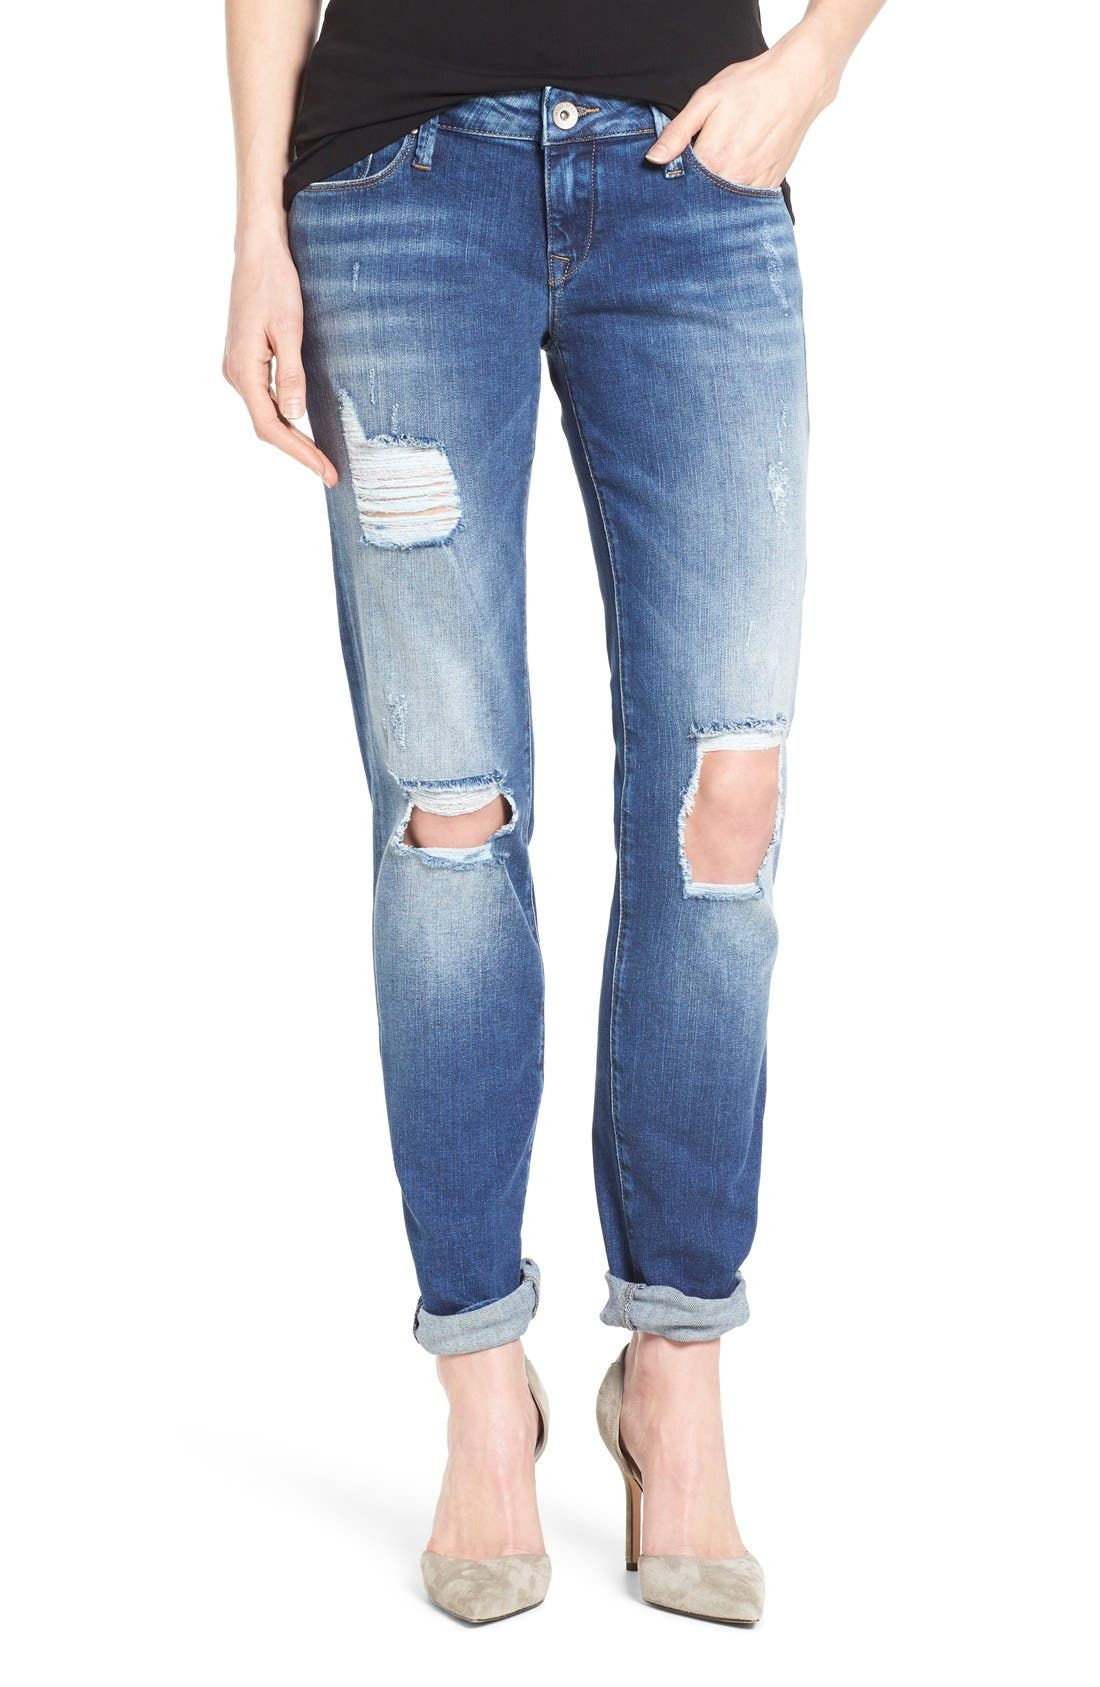 Alternate Image 1 Selected - Mavi Jeans 'Emma' Ripped Knee Boyfriend Slim Jeans (Vintage)